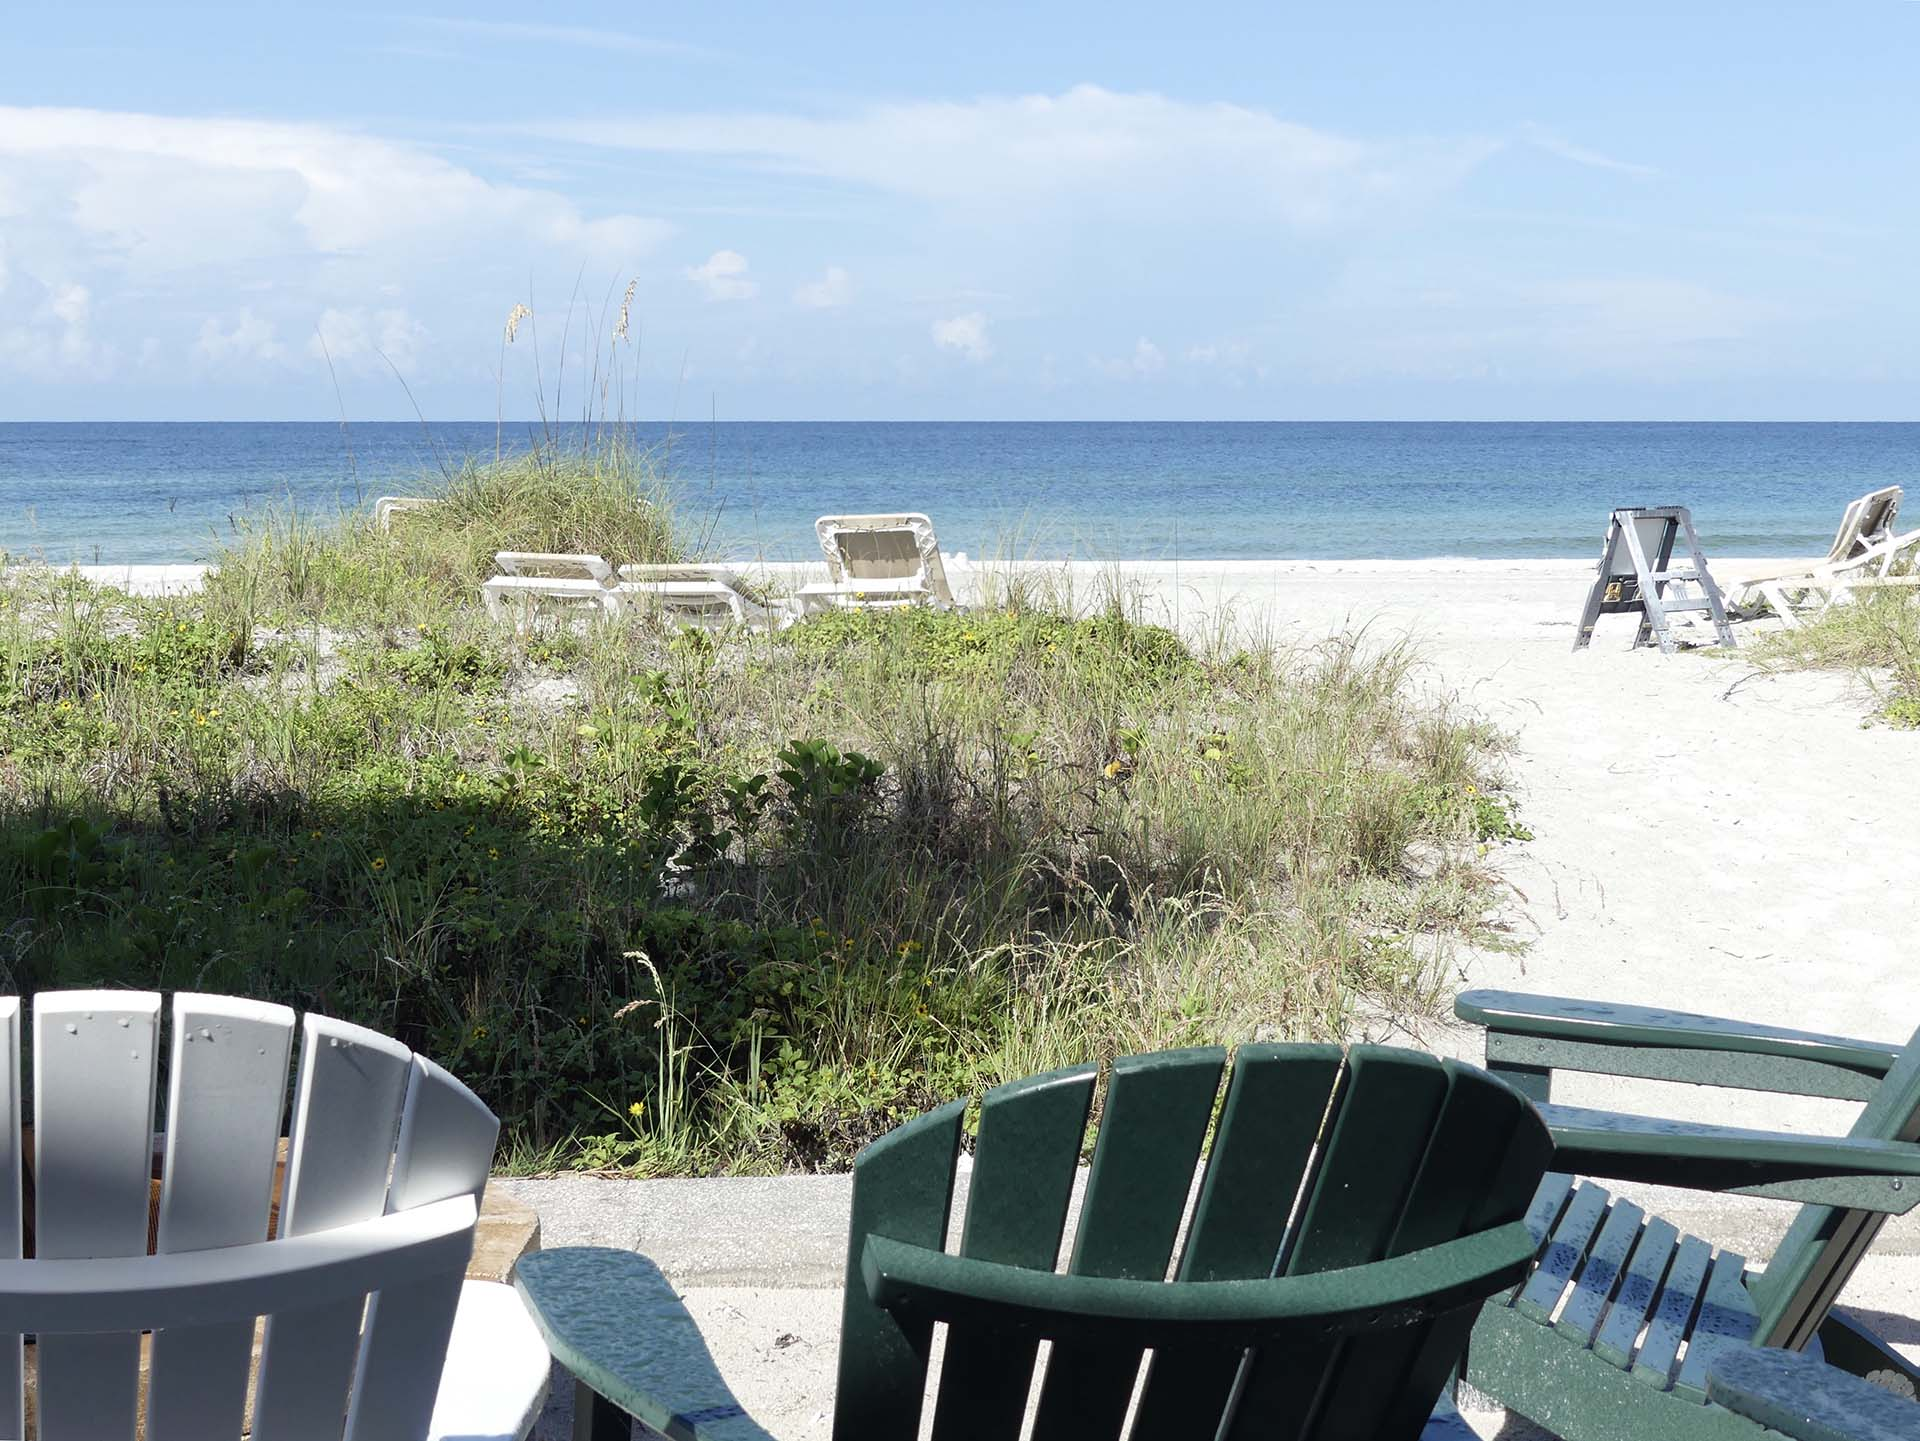 adirondack chairs facing the dunes and beach